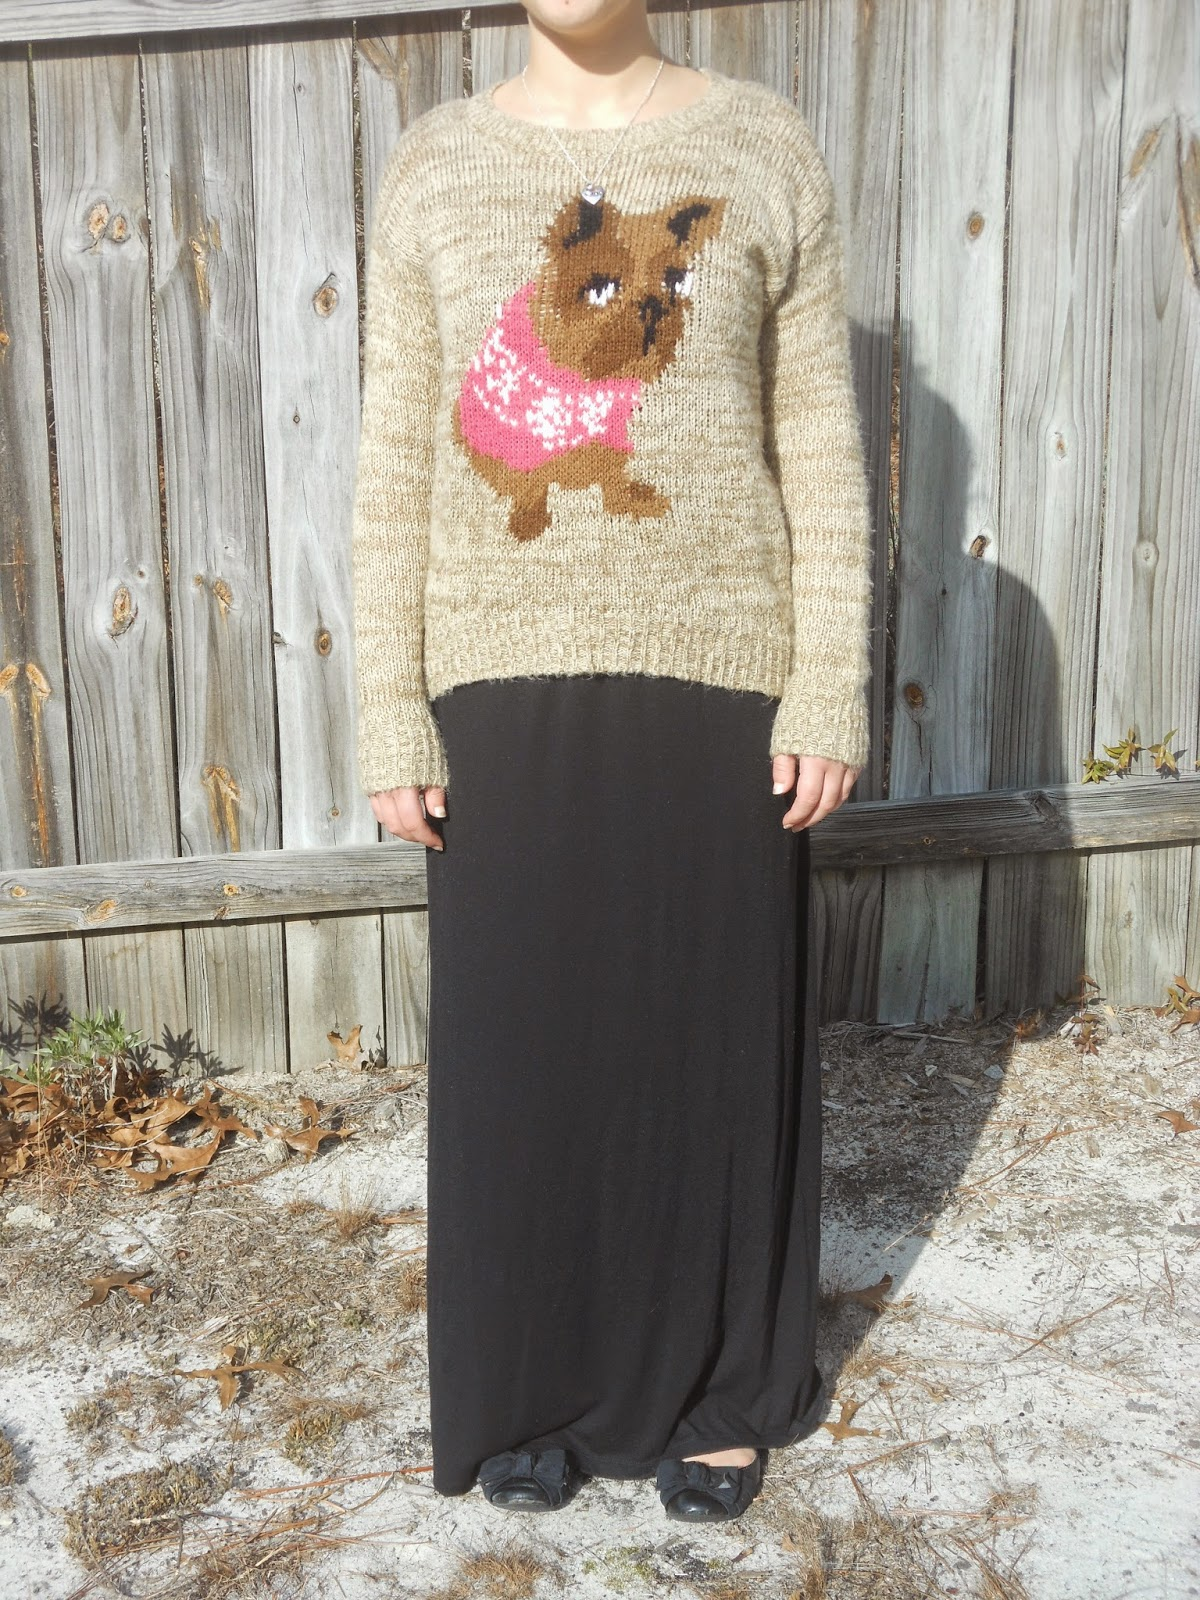 How to Wear a Dress in Winter || 03. black maxi dress, dog sweater, black flats, simple necklace. http://mybowsandclothes.blogspot.com/. #simplejewelry #maxidress #dressinwinter